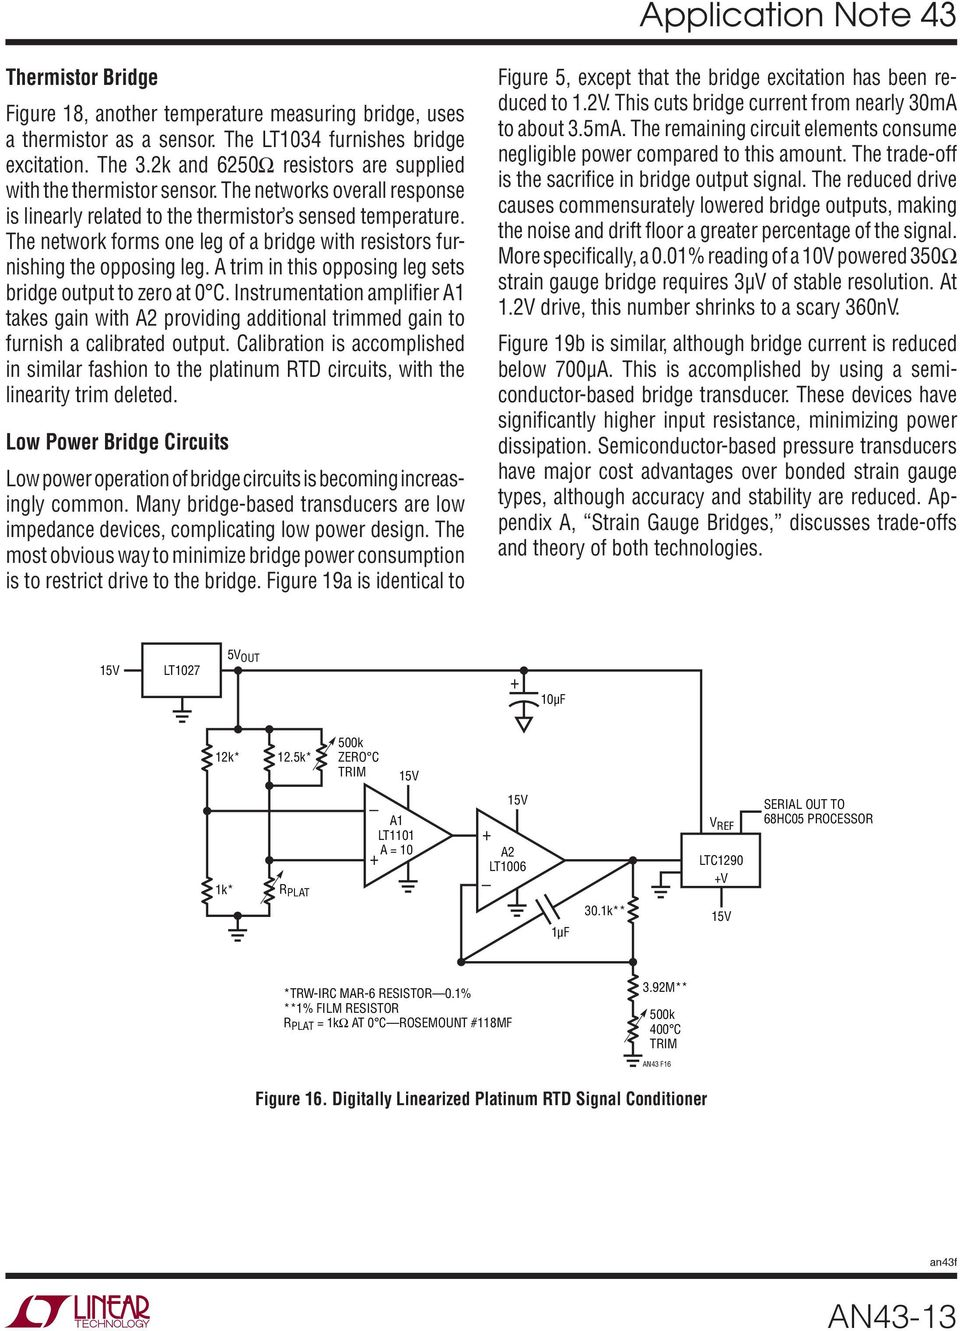 Application Note 43 June Bridge Circuits Marrying Gain And Balance Instrumentation Amplifier With Cmrr Calibration The Network Forms One Leg Of A Resistors Furnishing Opposing